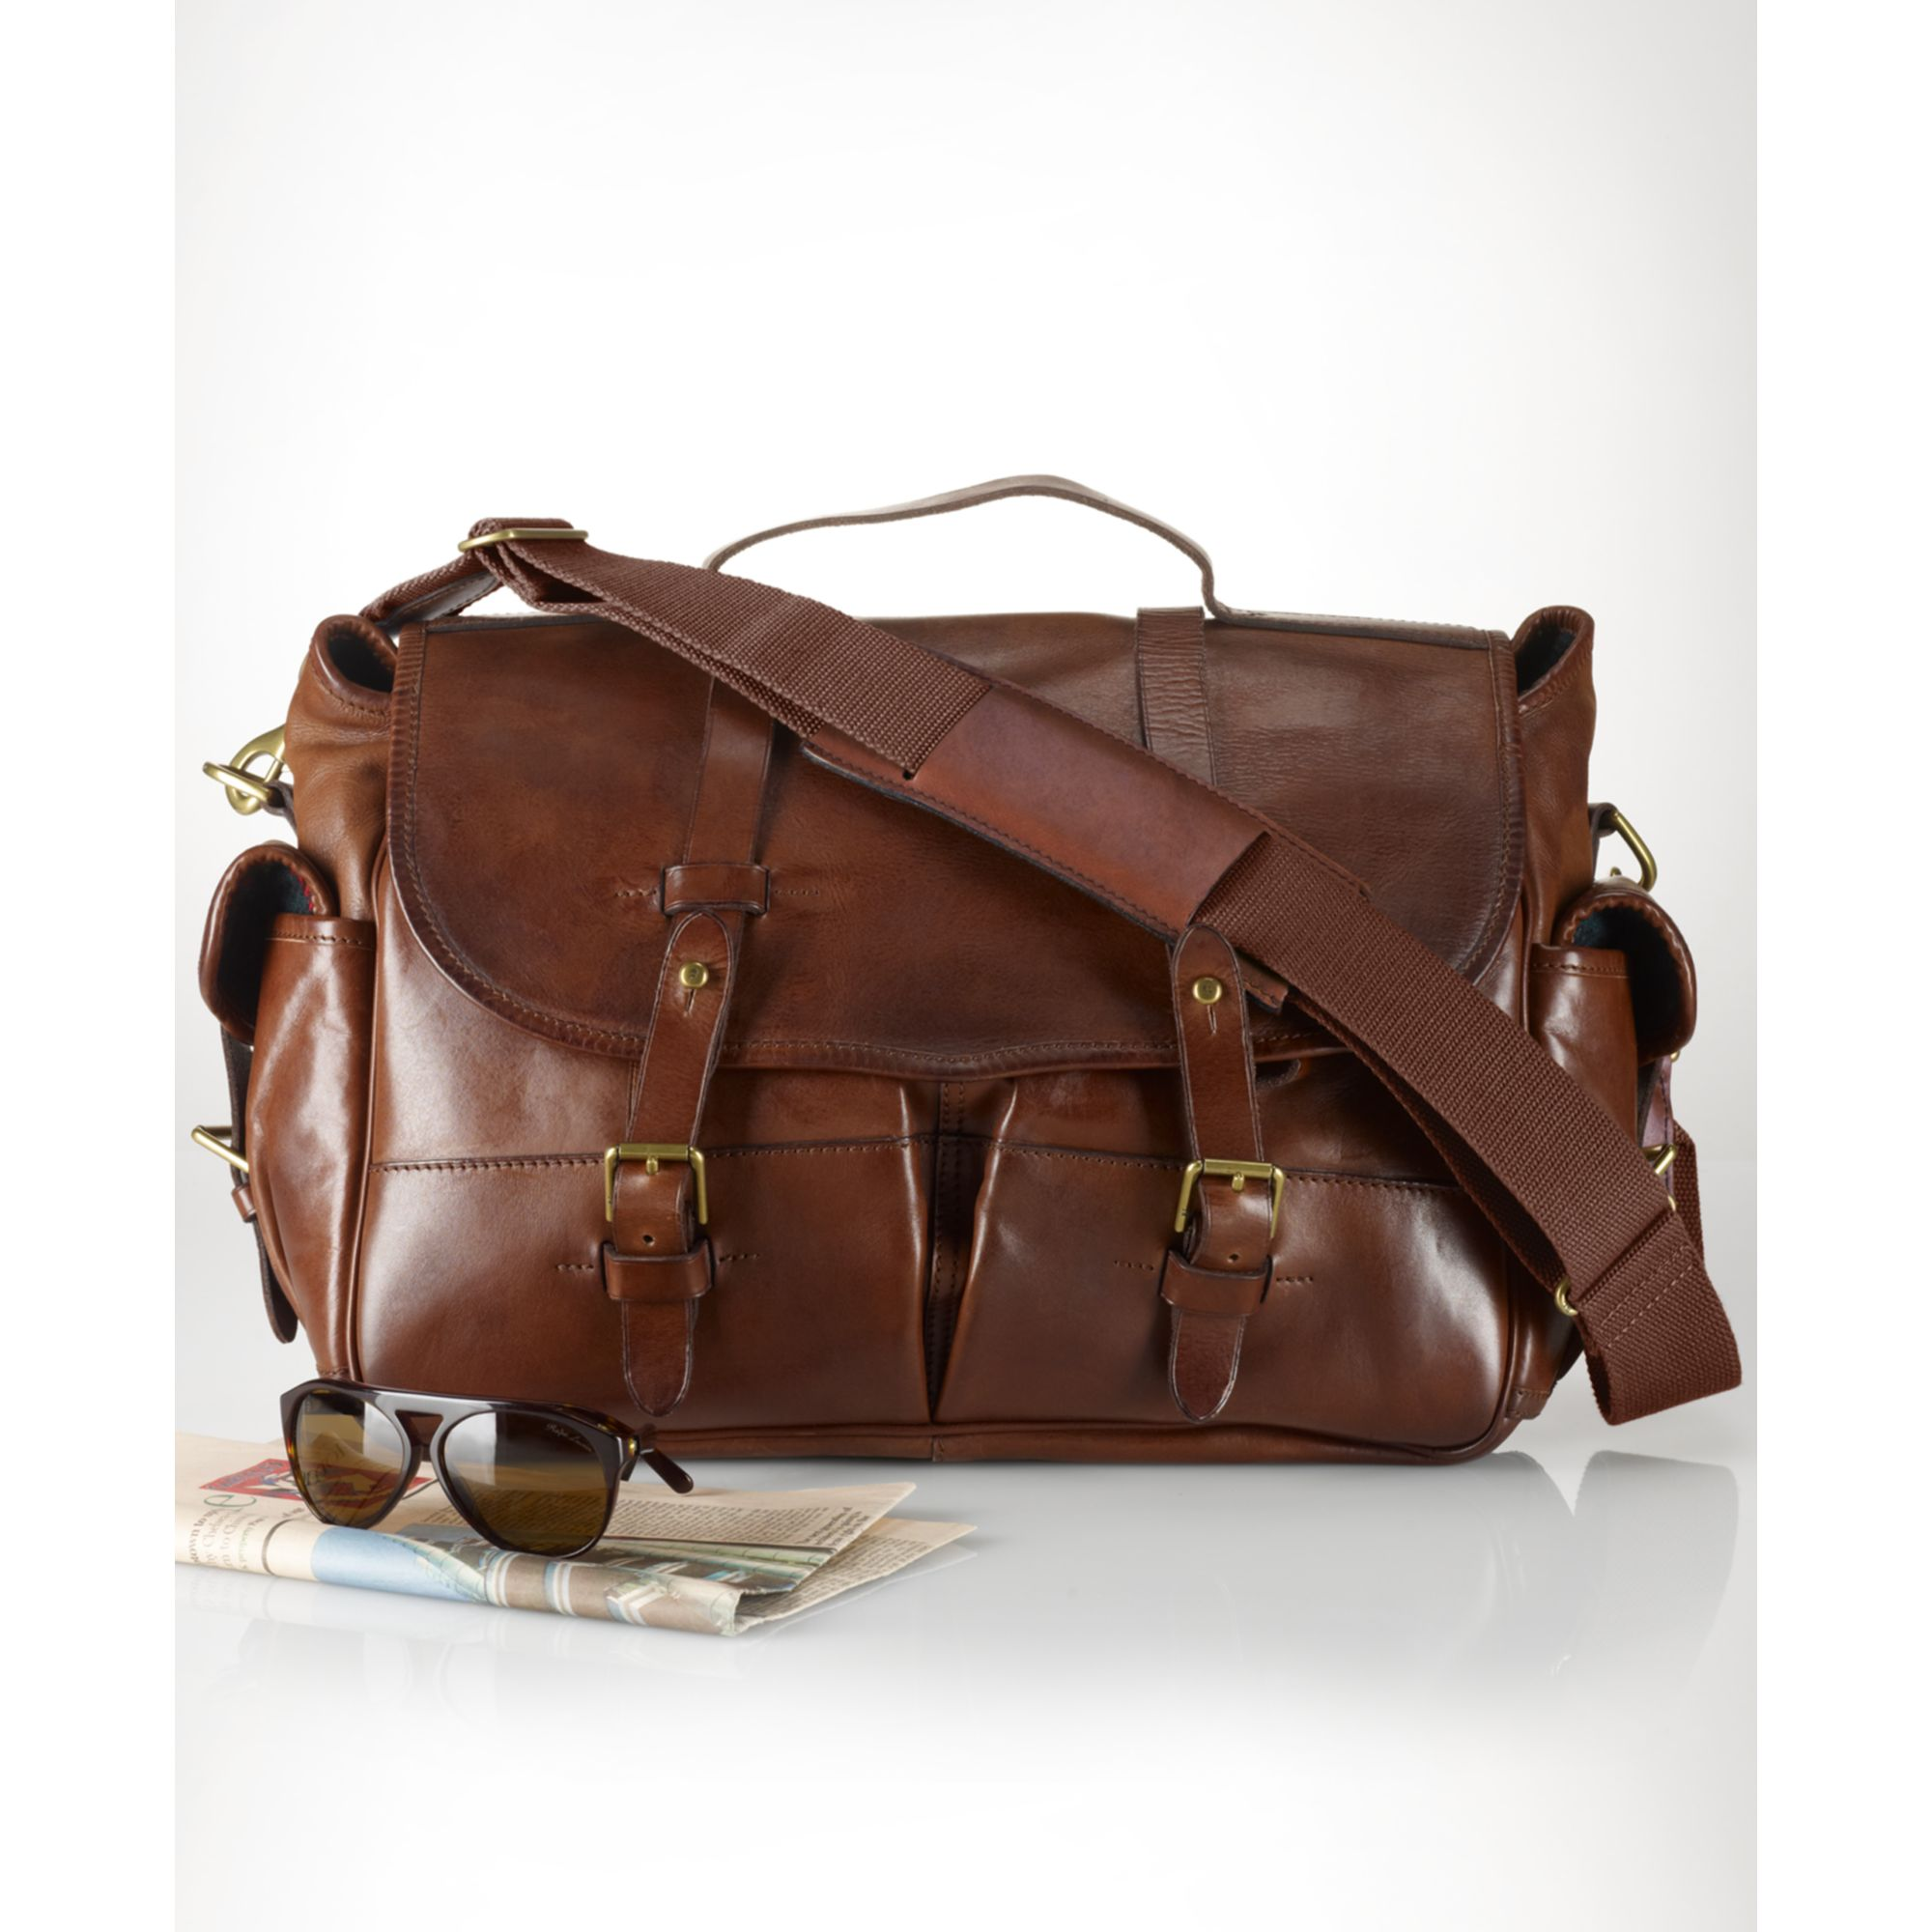 20abd65b2afc ... inexpensive lyst ralph lauren leather messenger bag in brown for men  8f910 24174